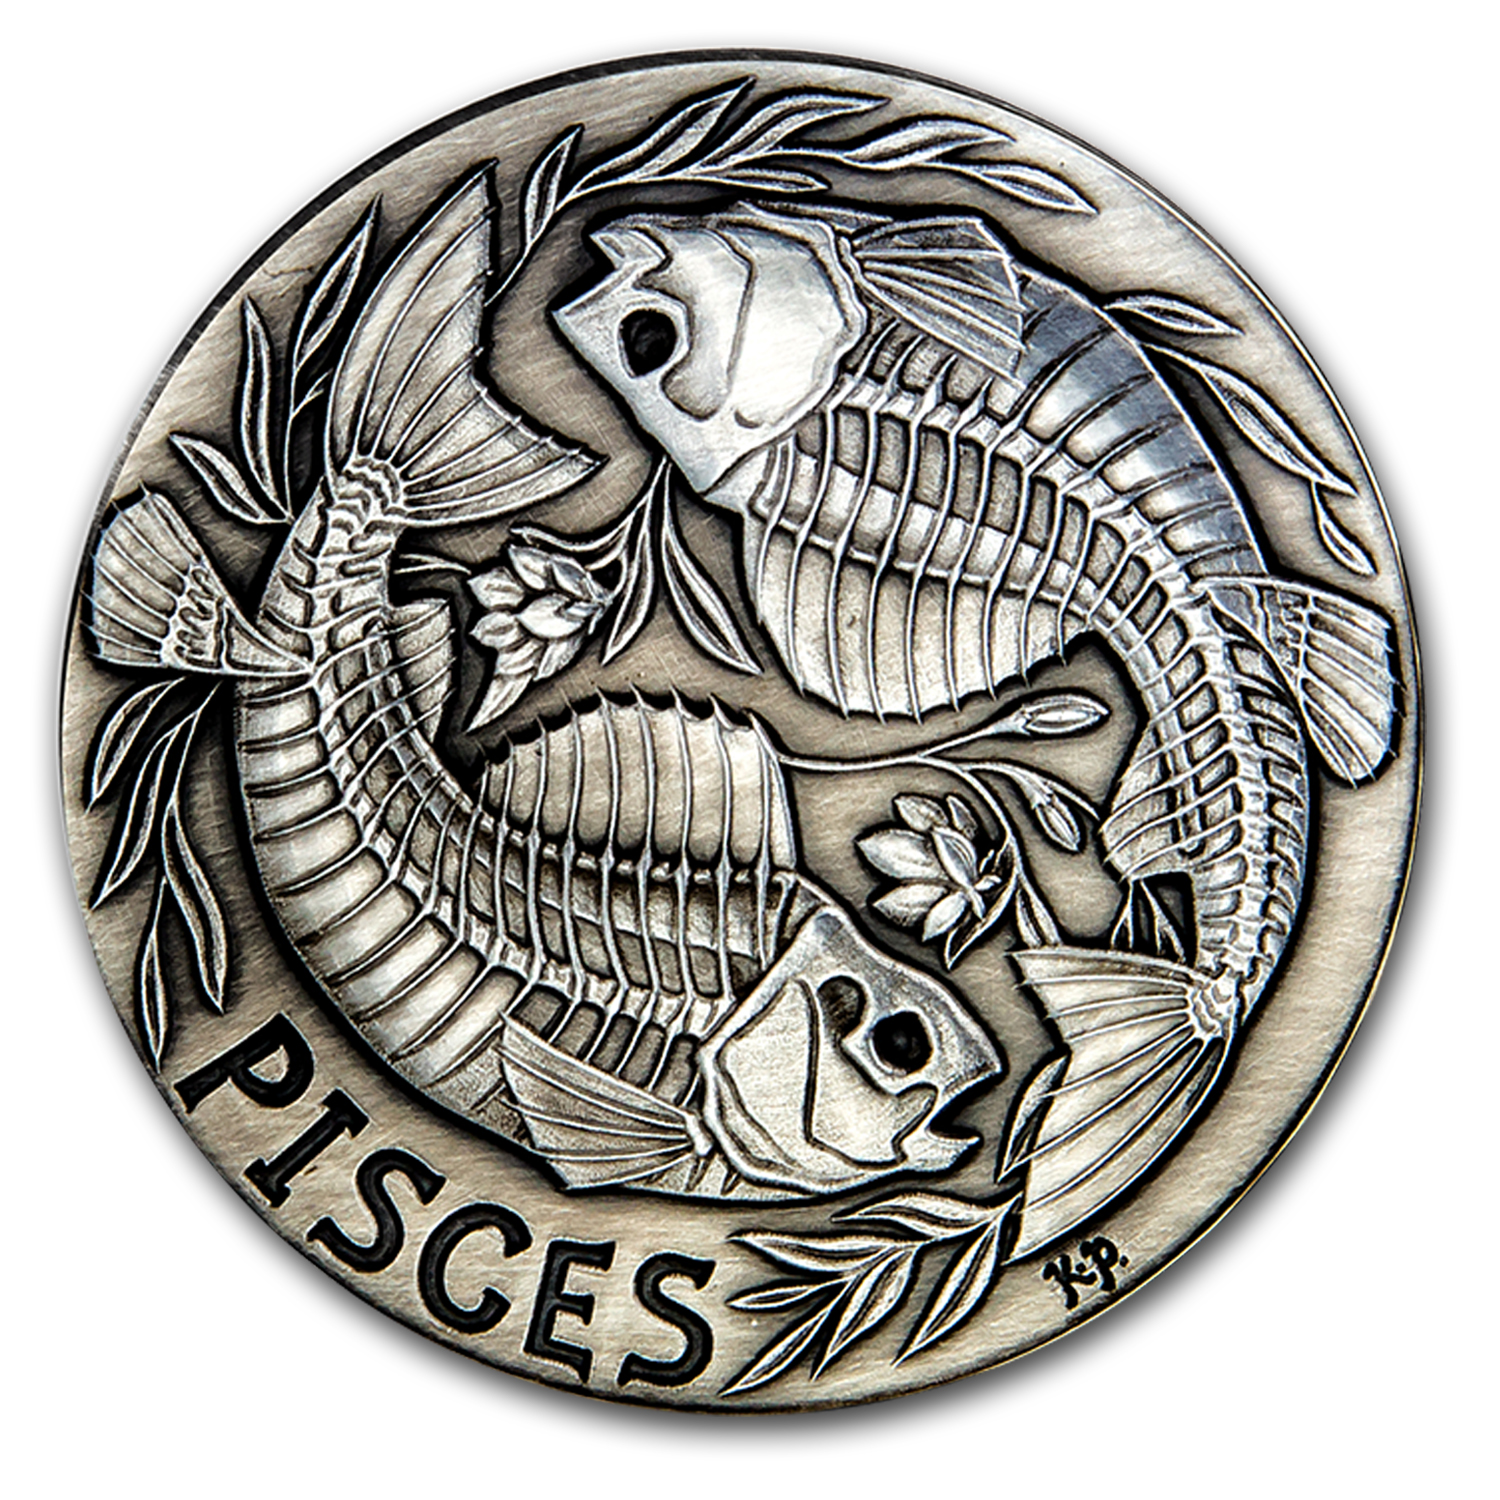 1 oz Silver Antique Round - Zodiac Skull Series (Pisces)